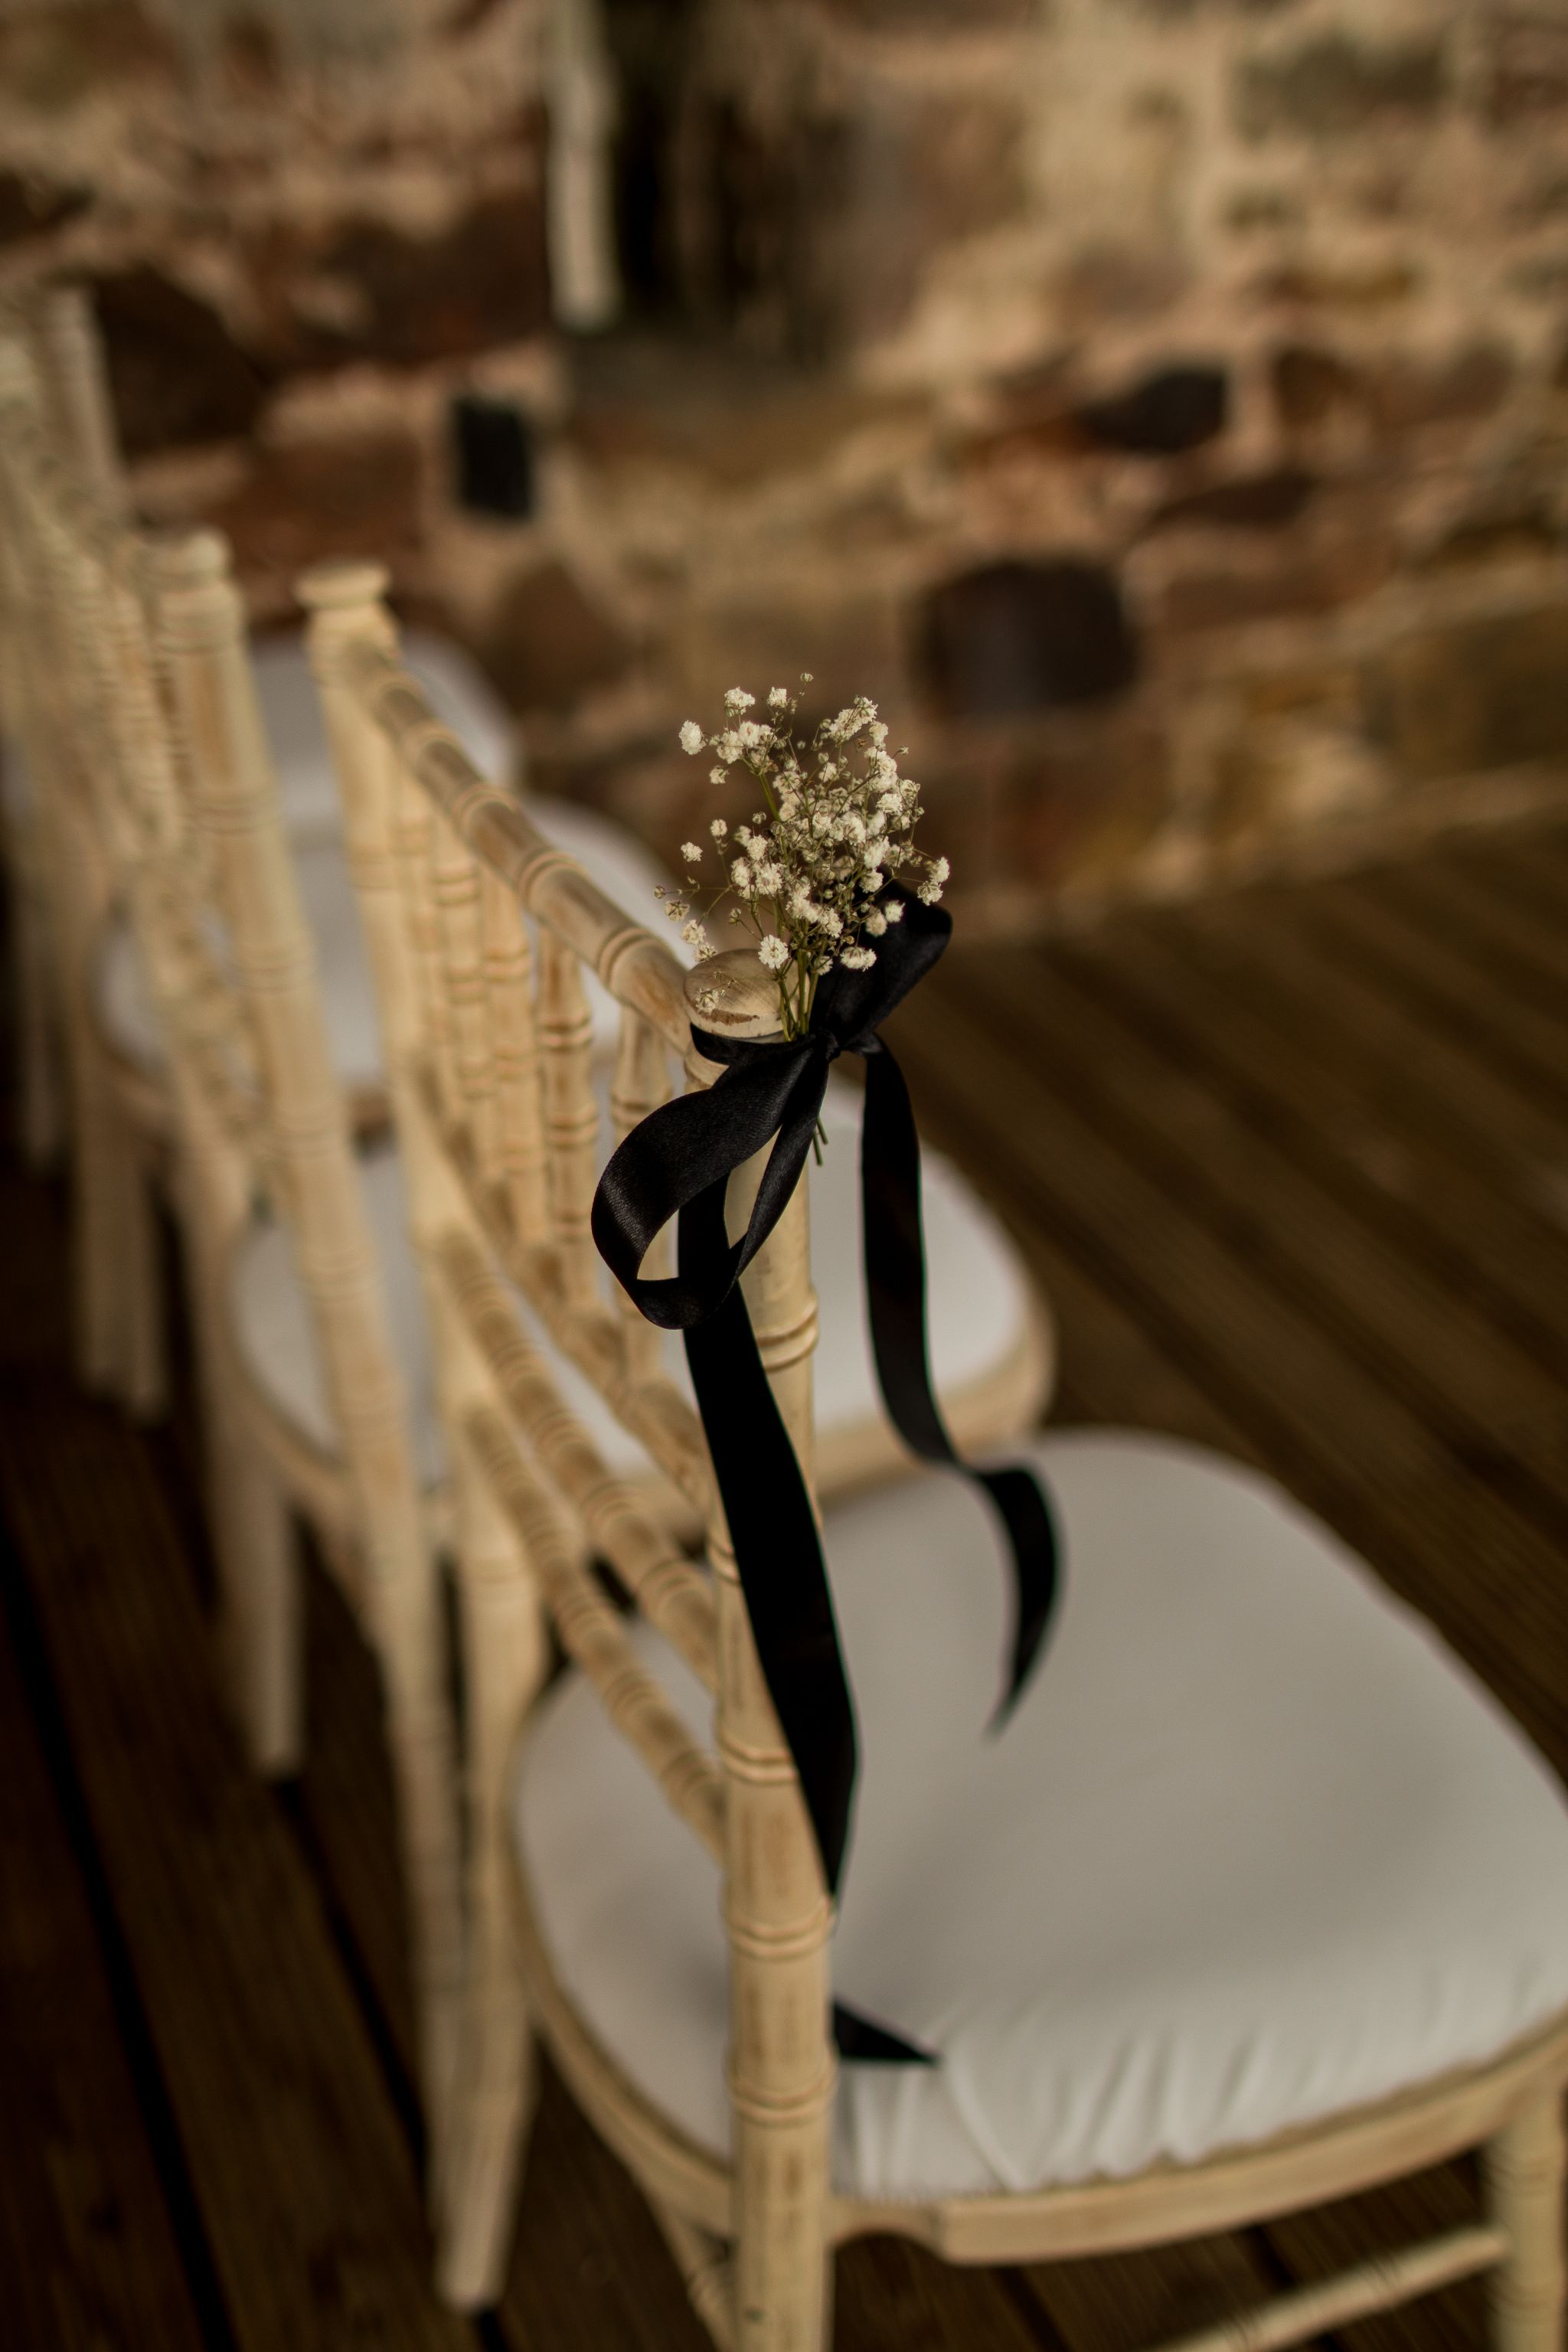 hannah layford wedding photography ceremony details chair